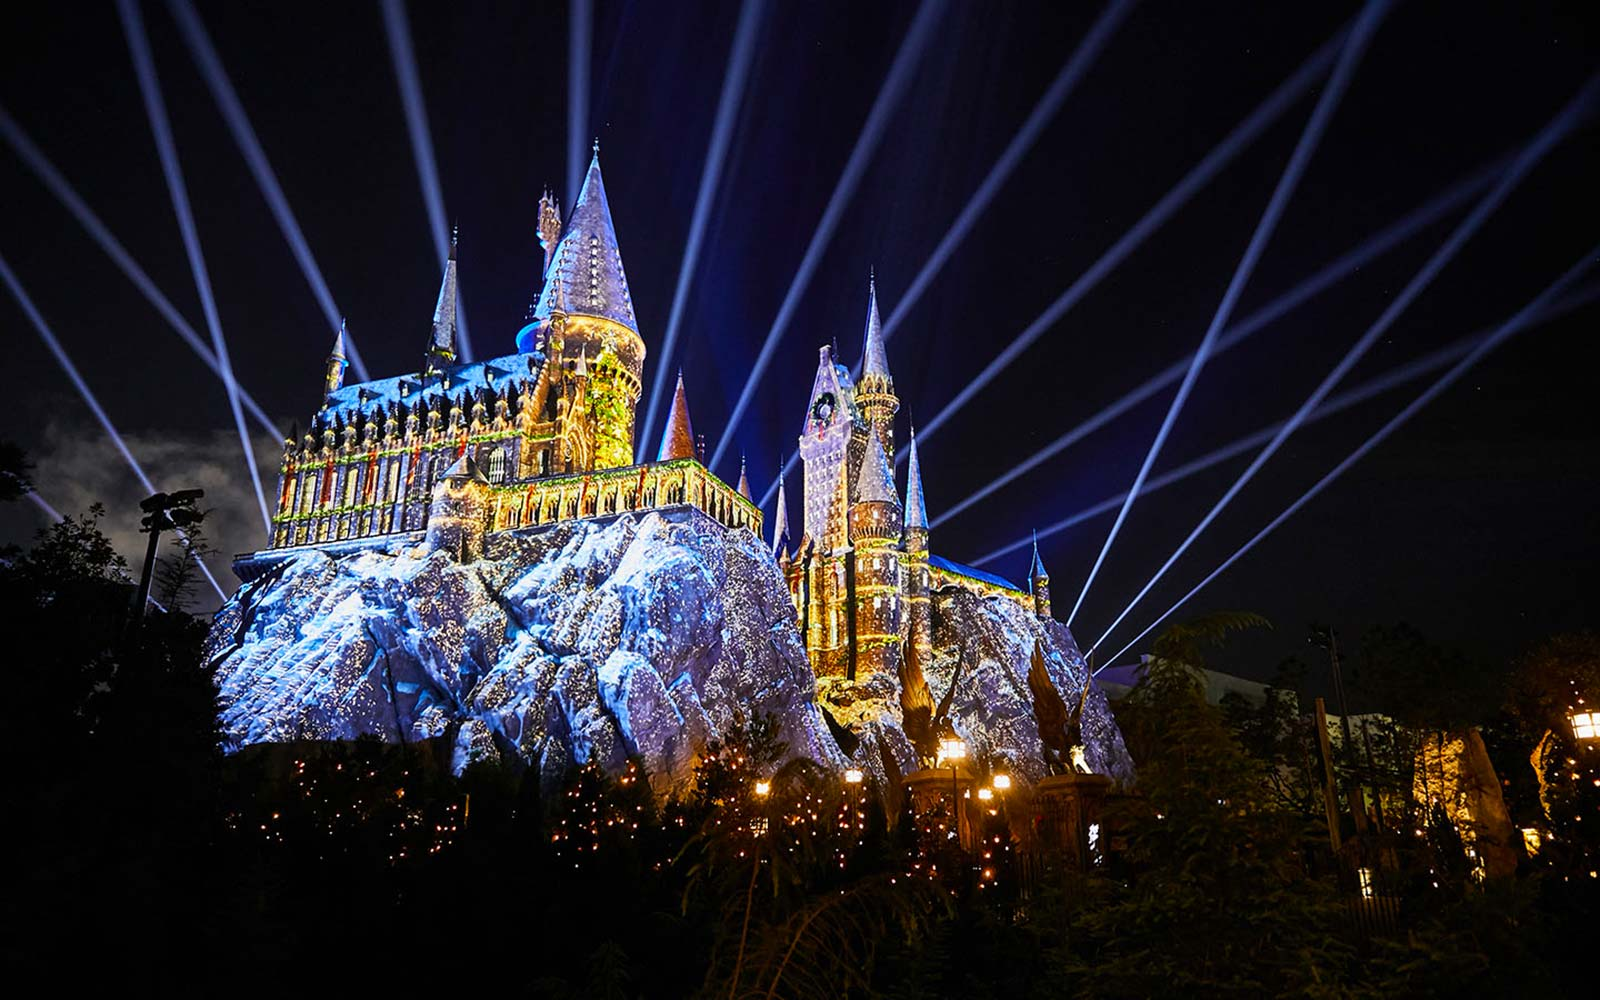 Wizarding World of Harry Potter Hogwarts Castle Holidays Light Show Universal Orlando Florida